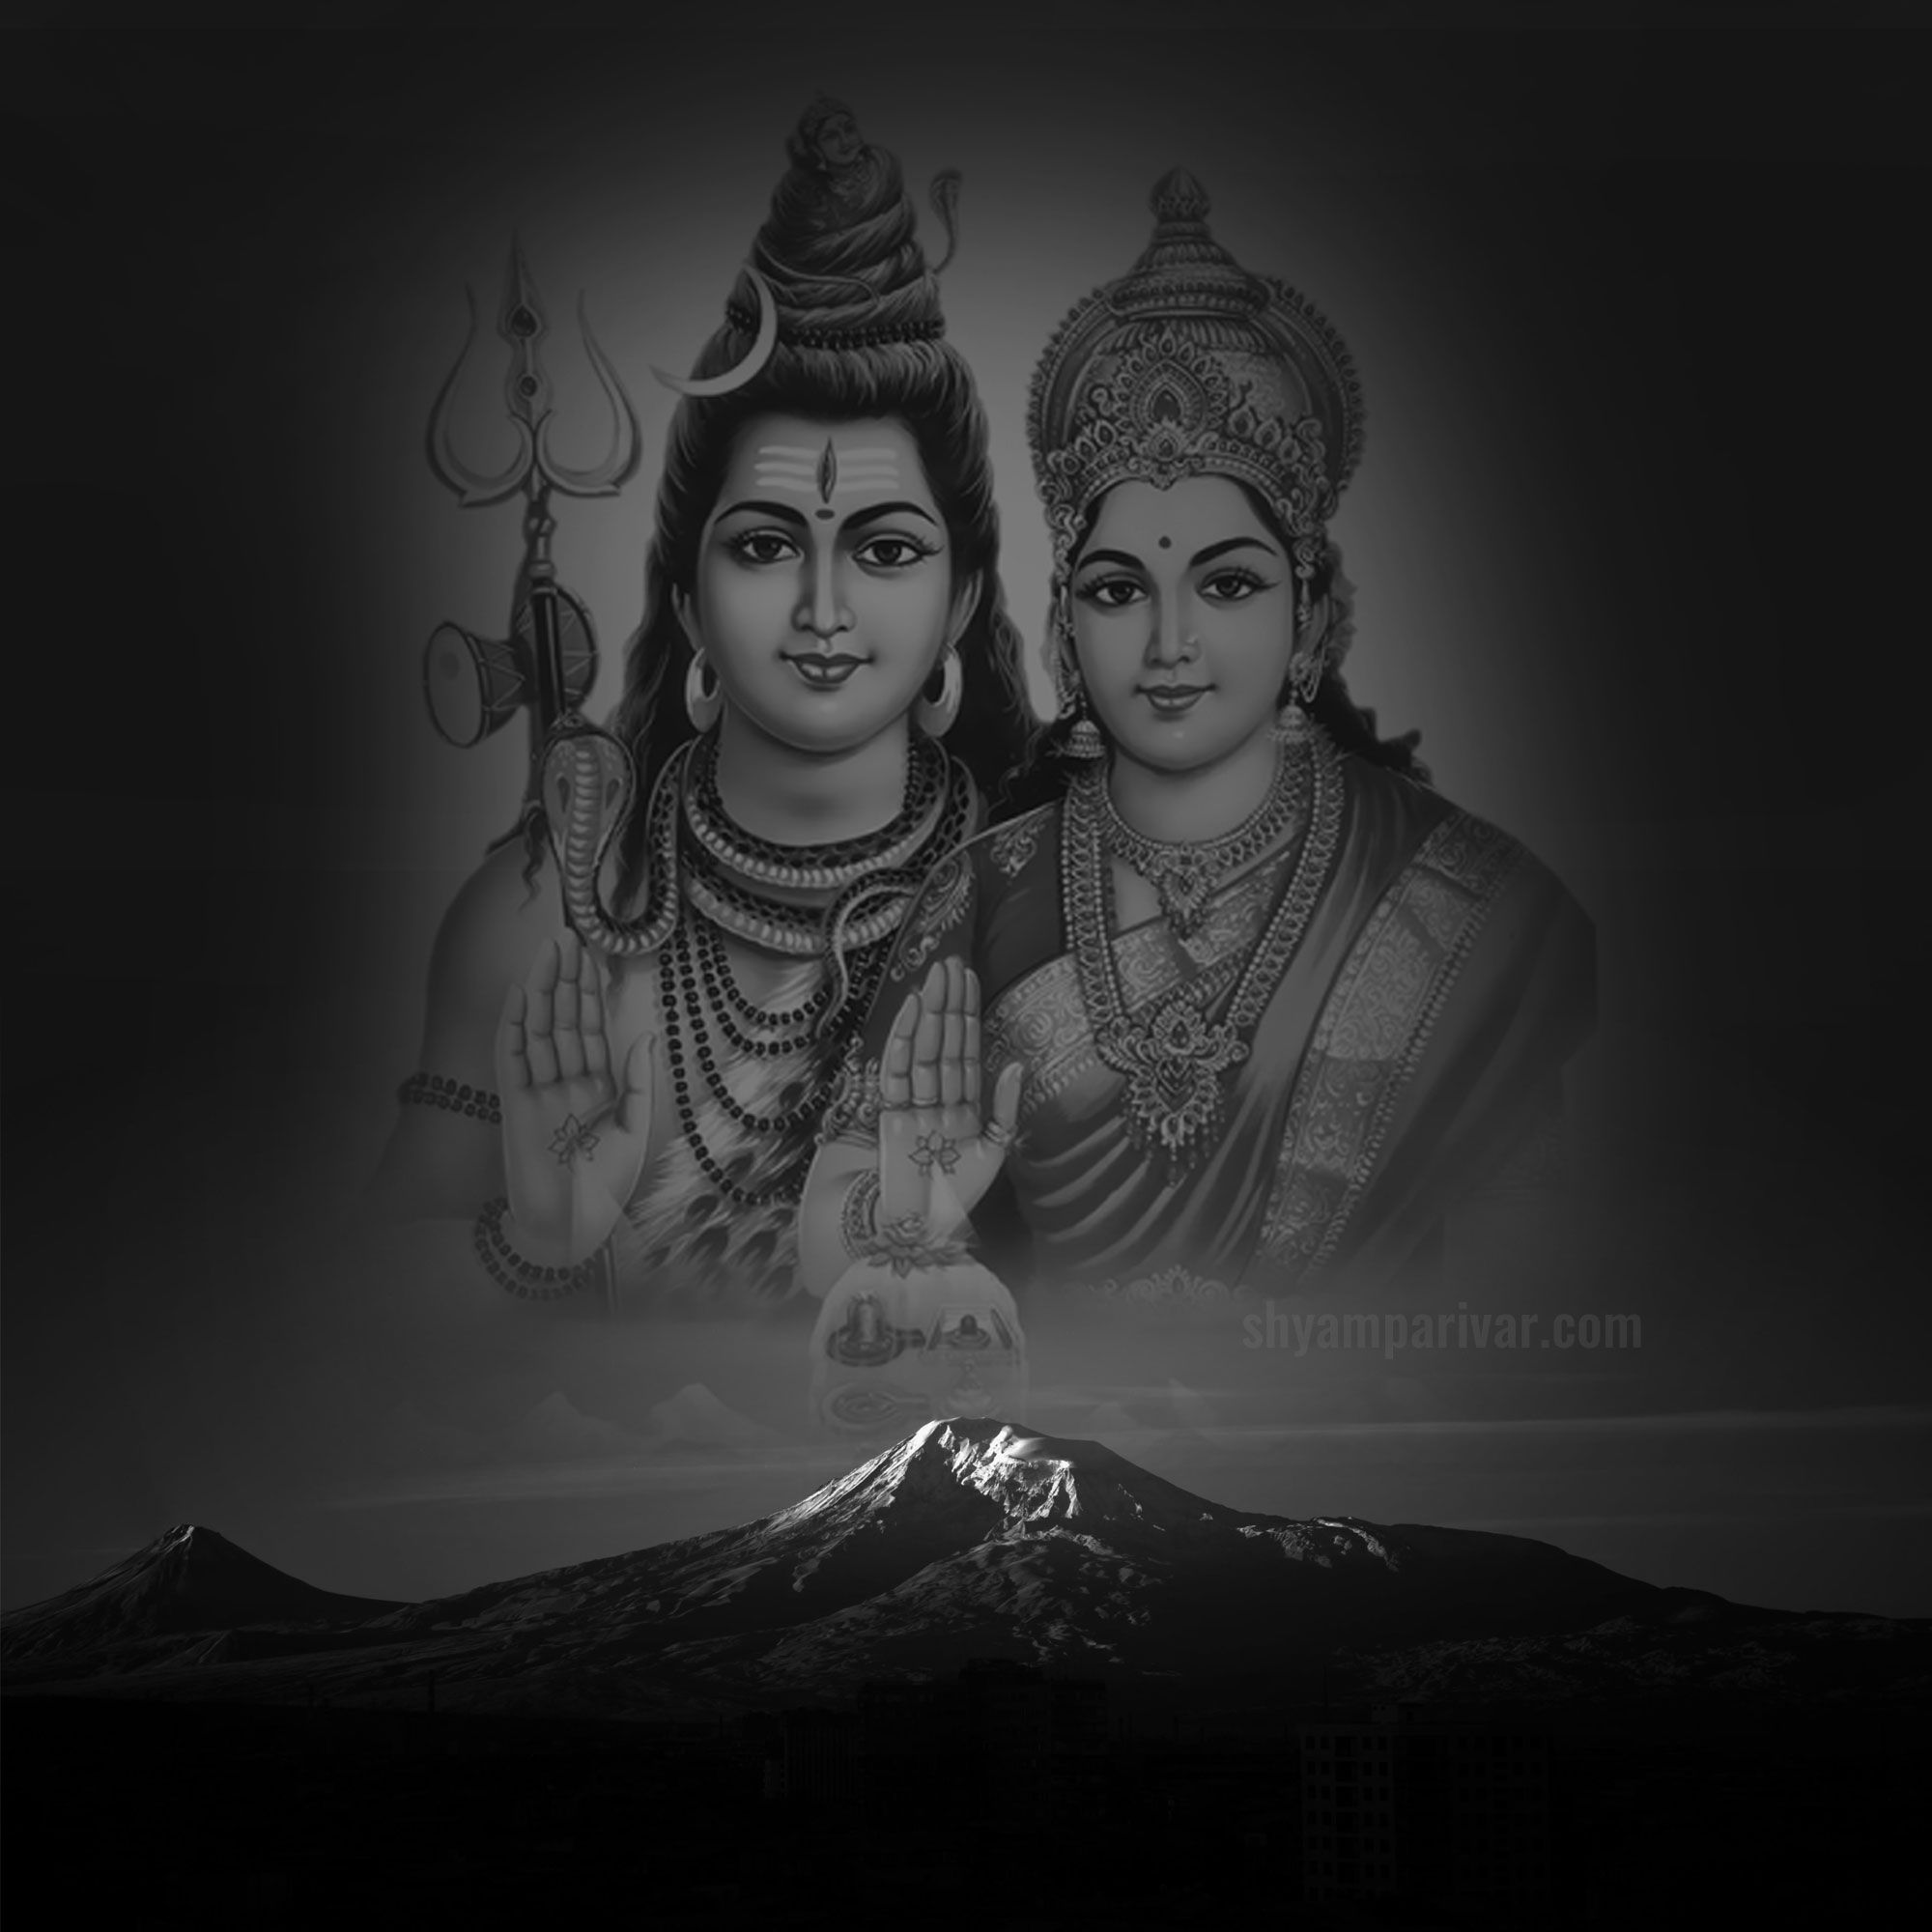 Black And White Wallpaper Of Lord Shiva Photos Of Lord Shiva Shiva Photos Shiva